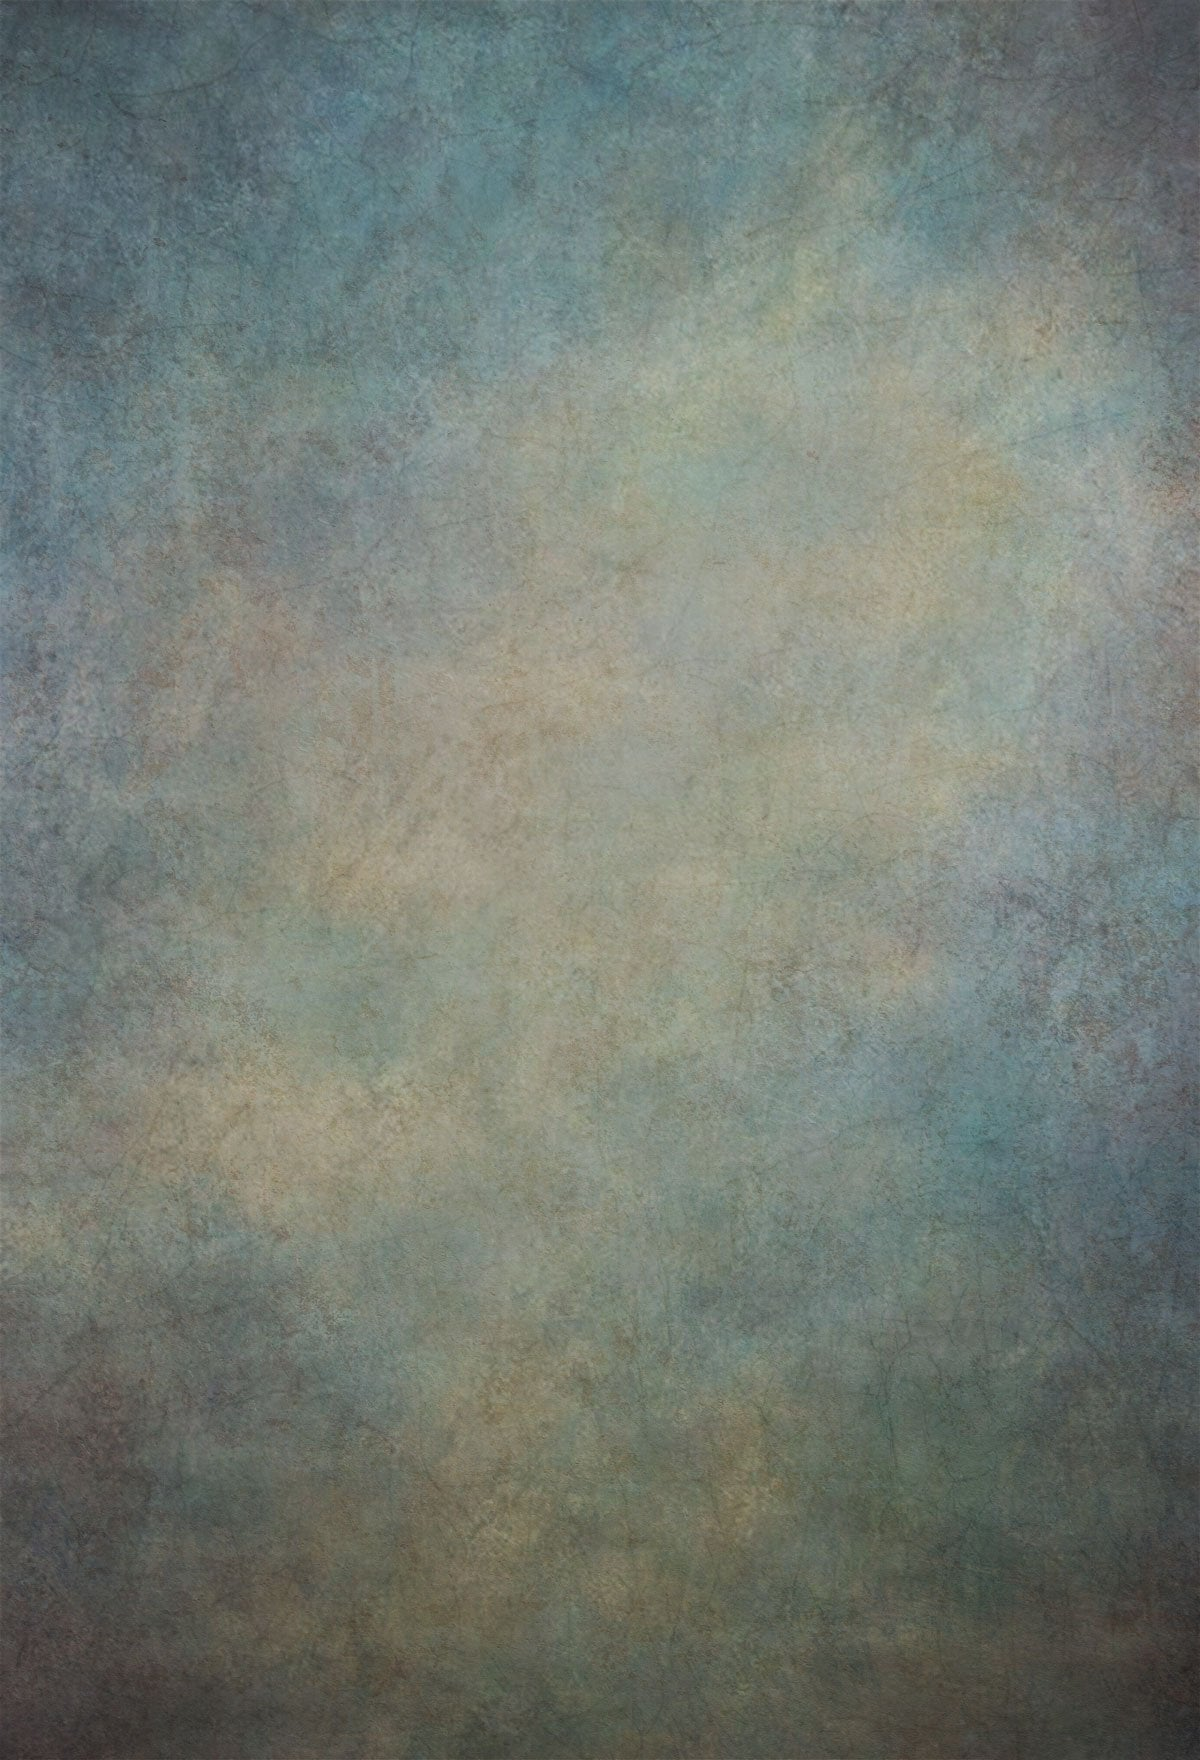 Load image into Gallery viewer, Kate Abstract Texture Backdrop Rusty Photos for Portrait Photography Vertical version - Kate backdrops UK